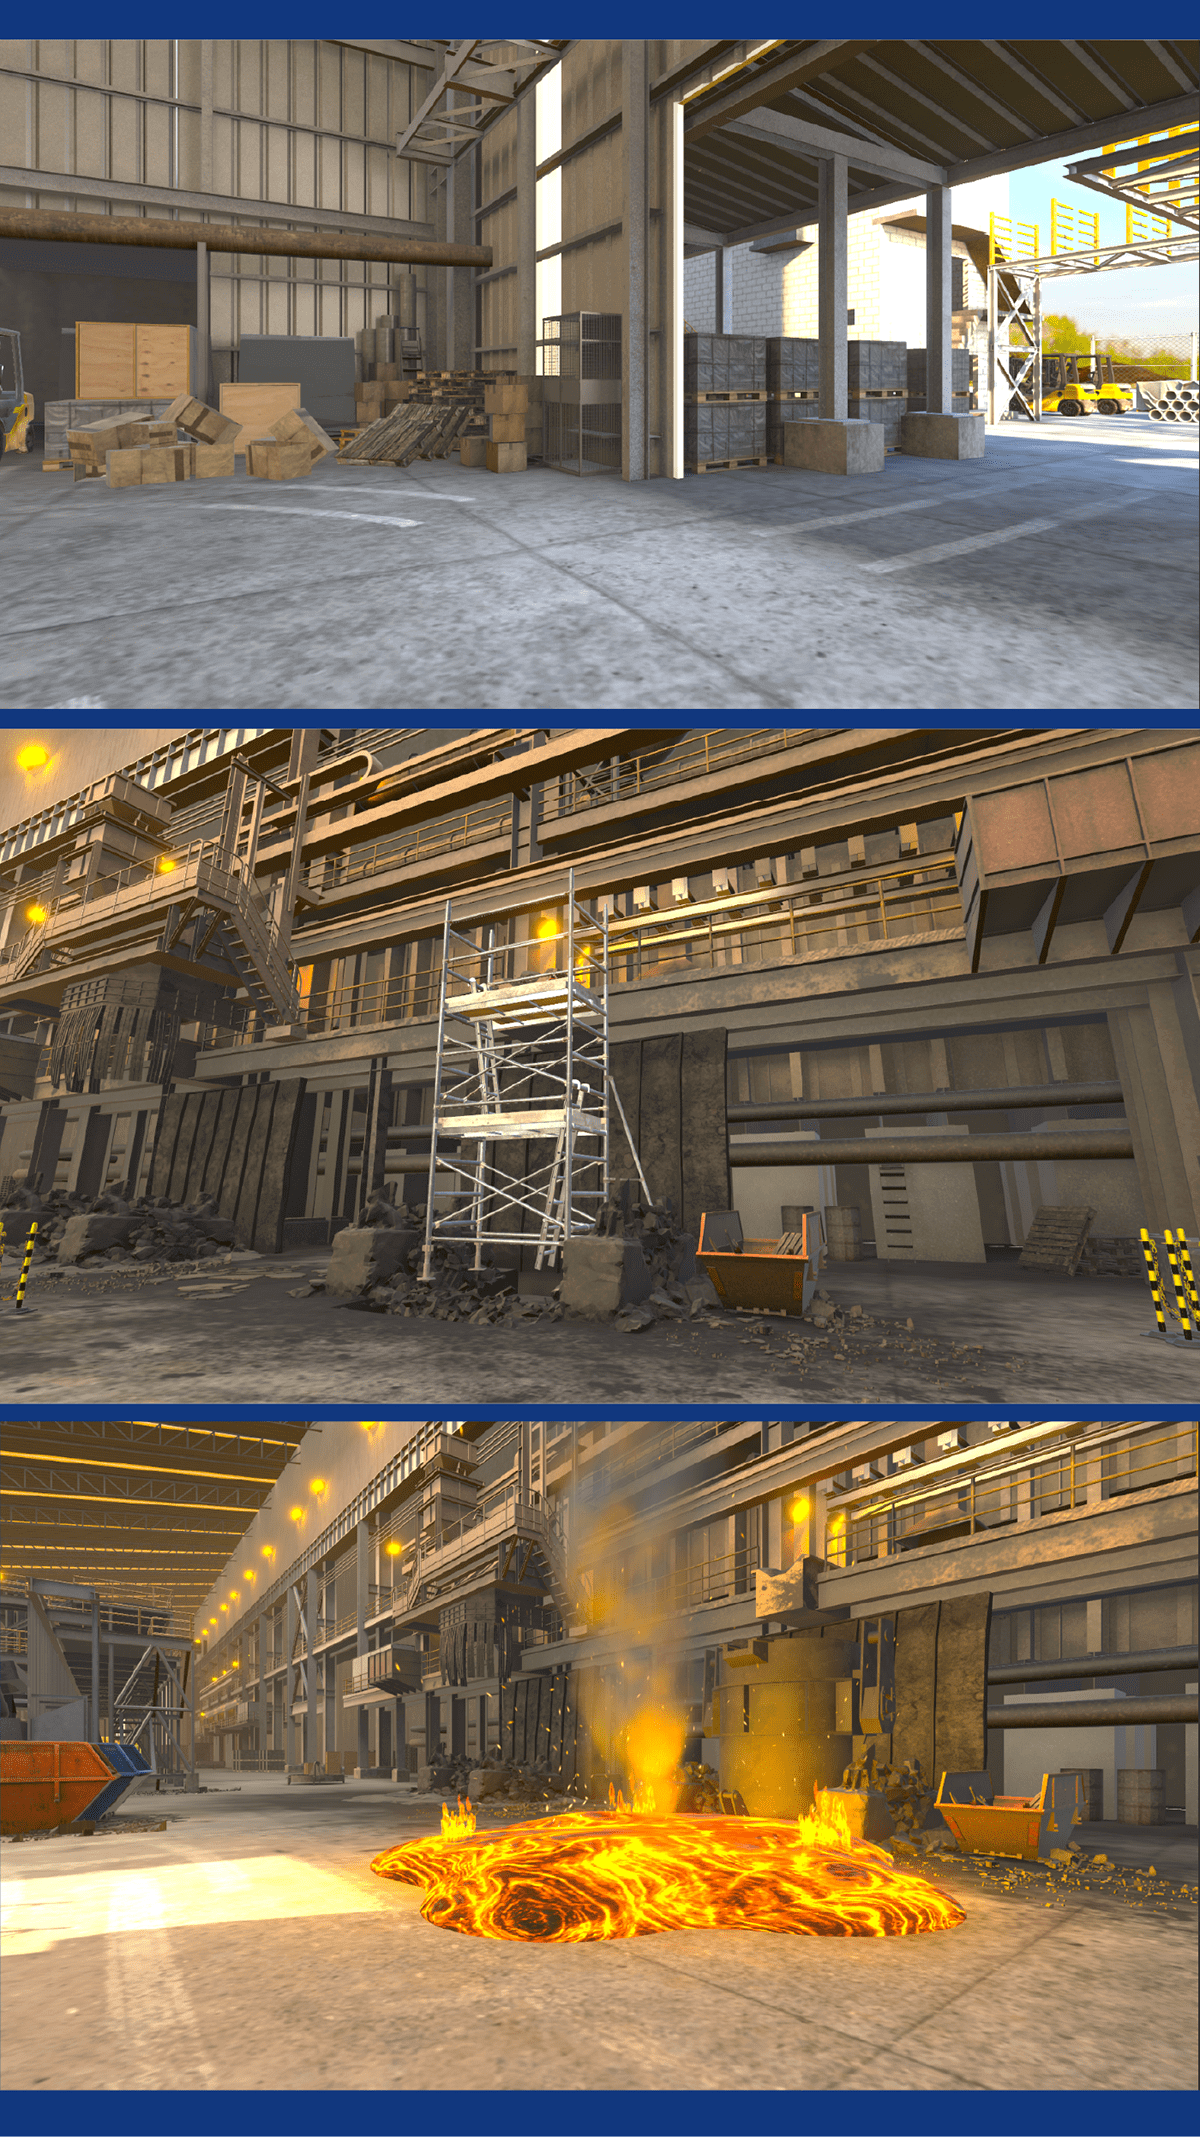 anglo american vr experience image breakdown